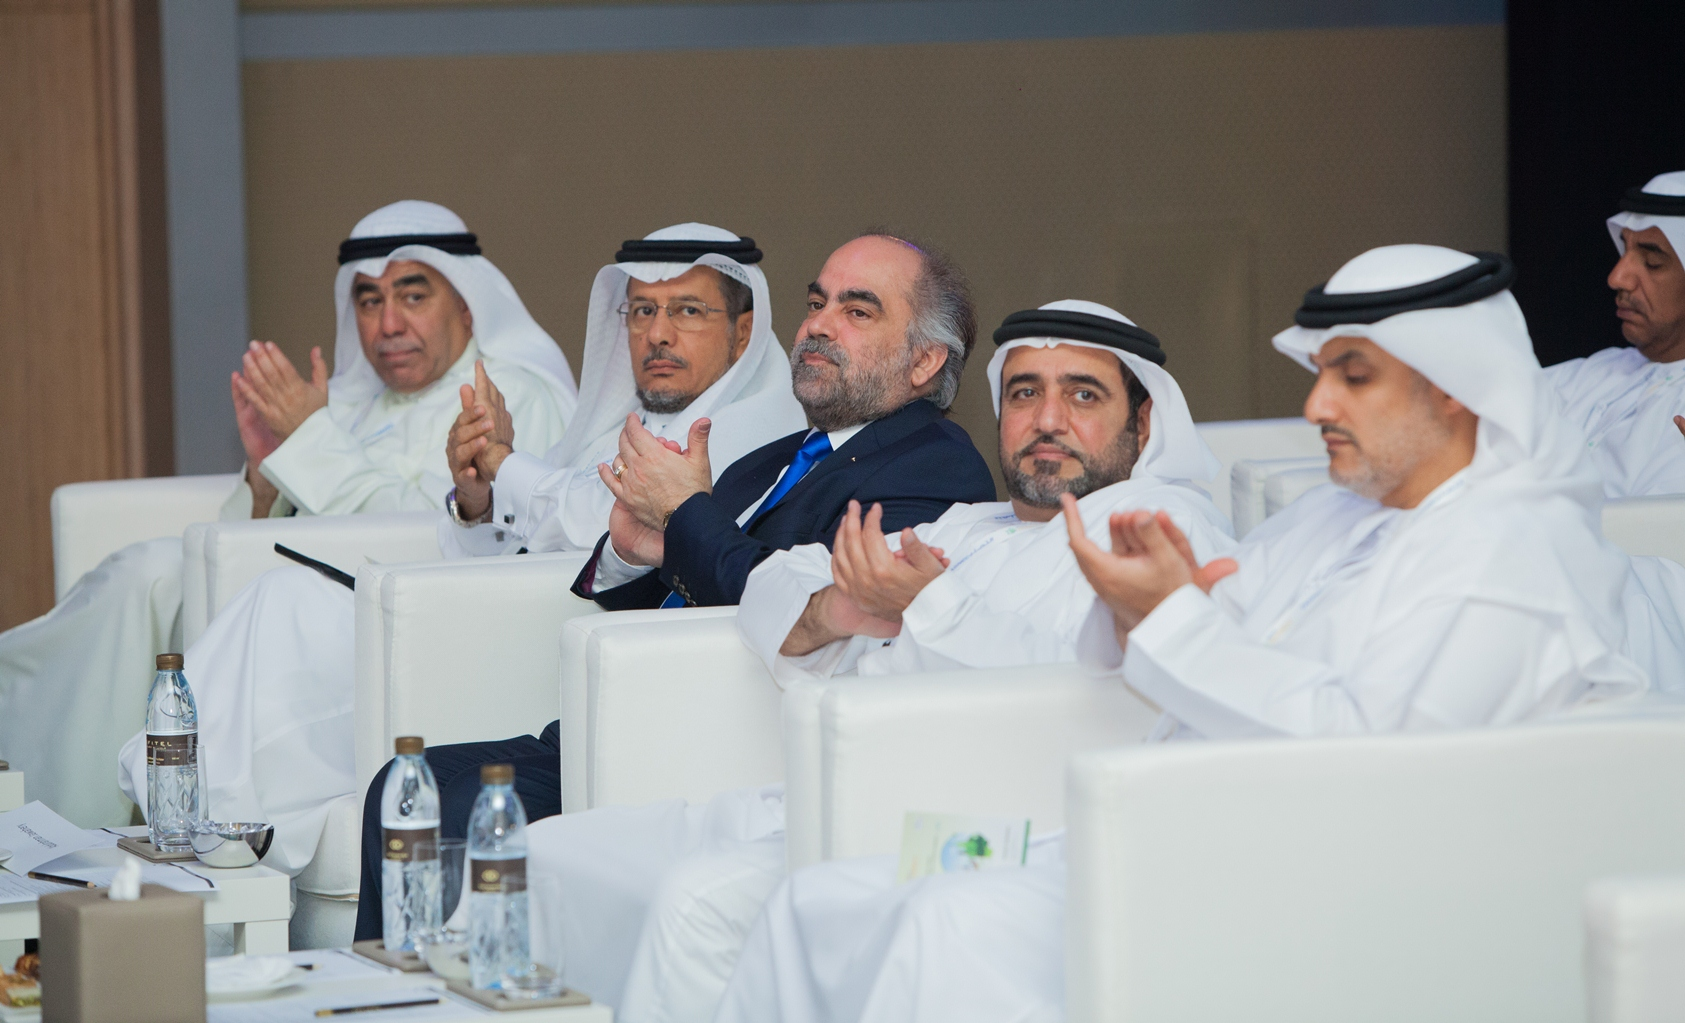 The time for GCC petrochemicals to contribute to the global sustainability agenda is now, say industry experts